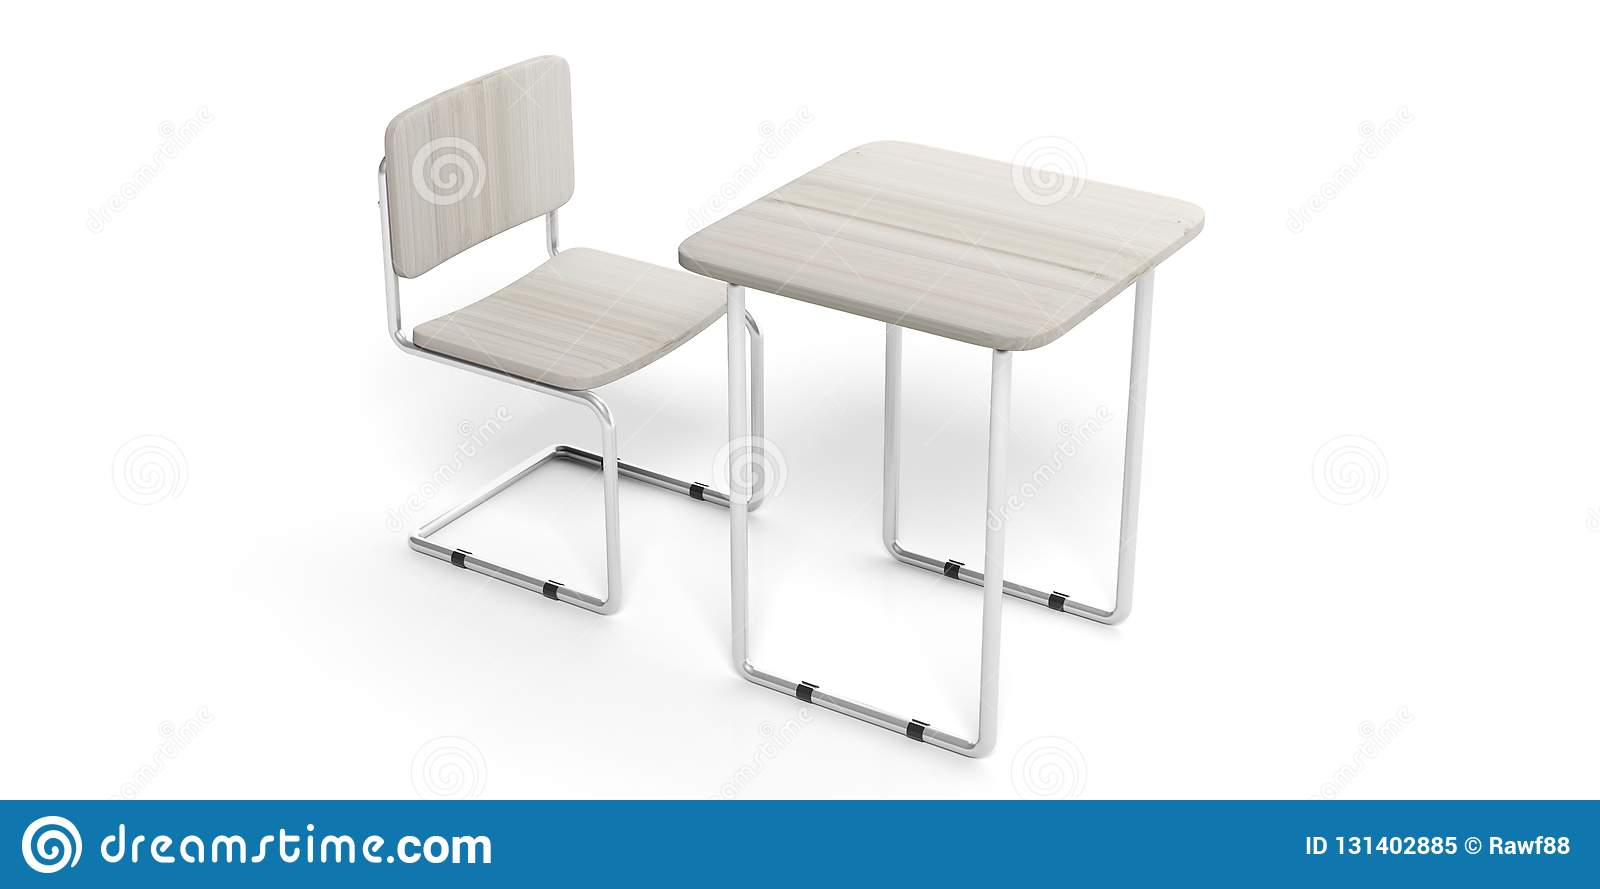 Magnificent Education Concept White Student Desk And Chair Isolated Gmtry Best Dining Table And Chair Ideas Images Gmtryco